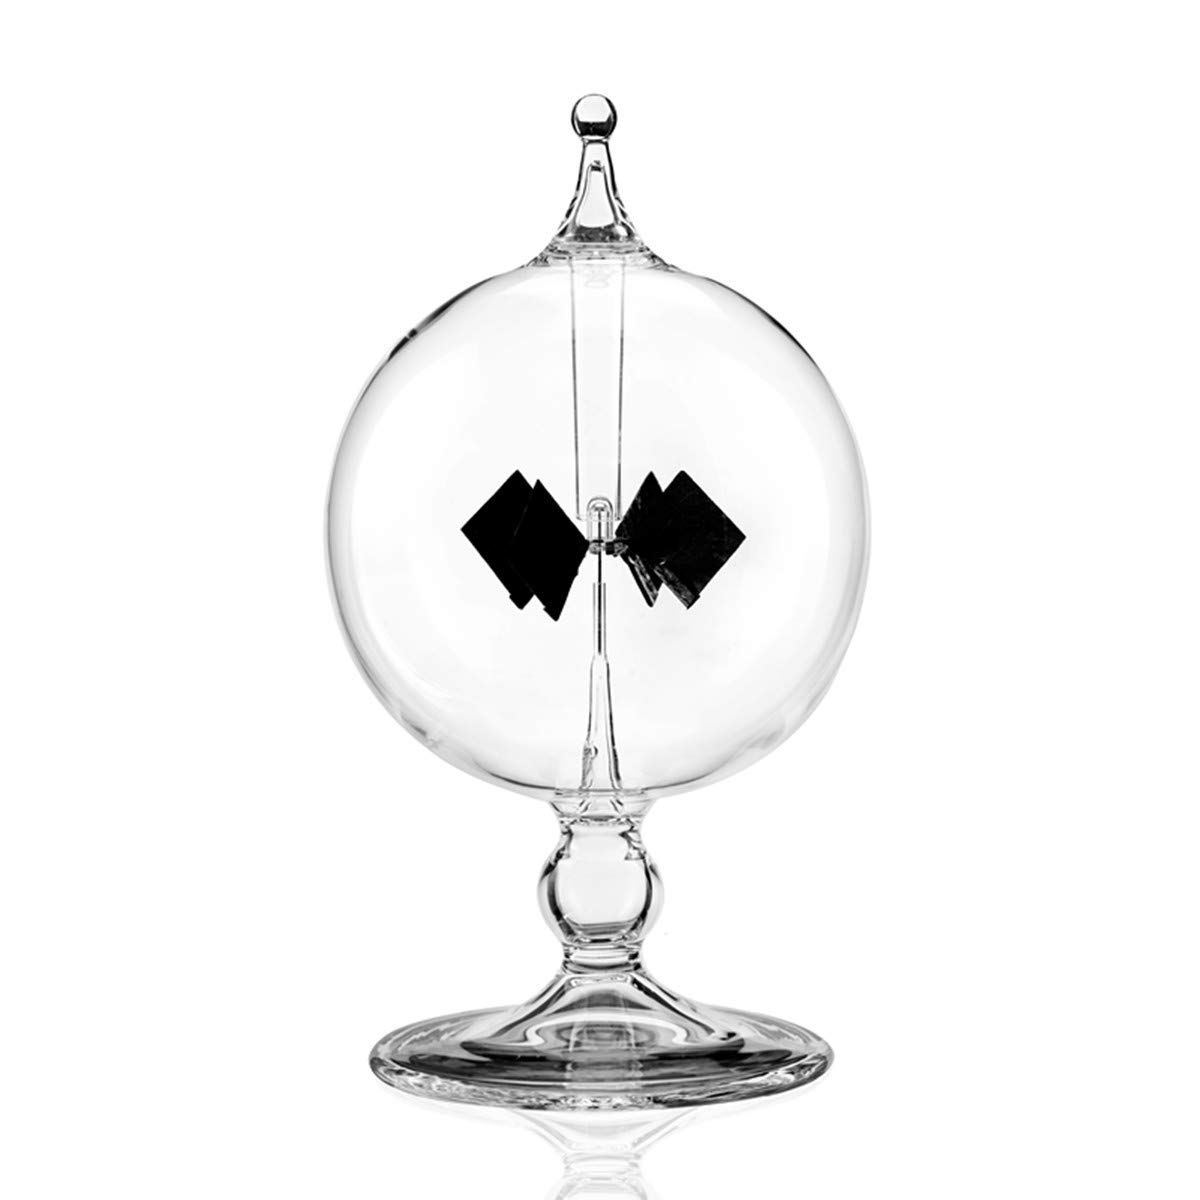 MarsGeek Glass Windmill Solar Powered Crookes Radiometer Light Mill for Detecting Sunlight and Electromagnetic Radiation Educational Teaching Study Tool Office Home Decoration Gift by MarsGeek